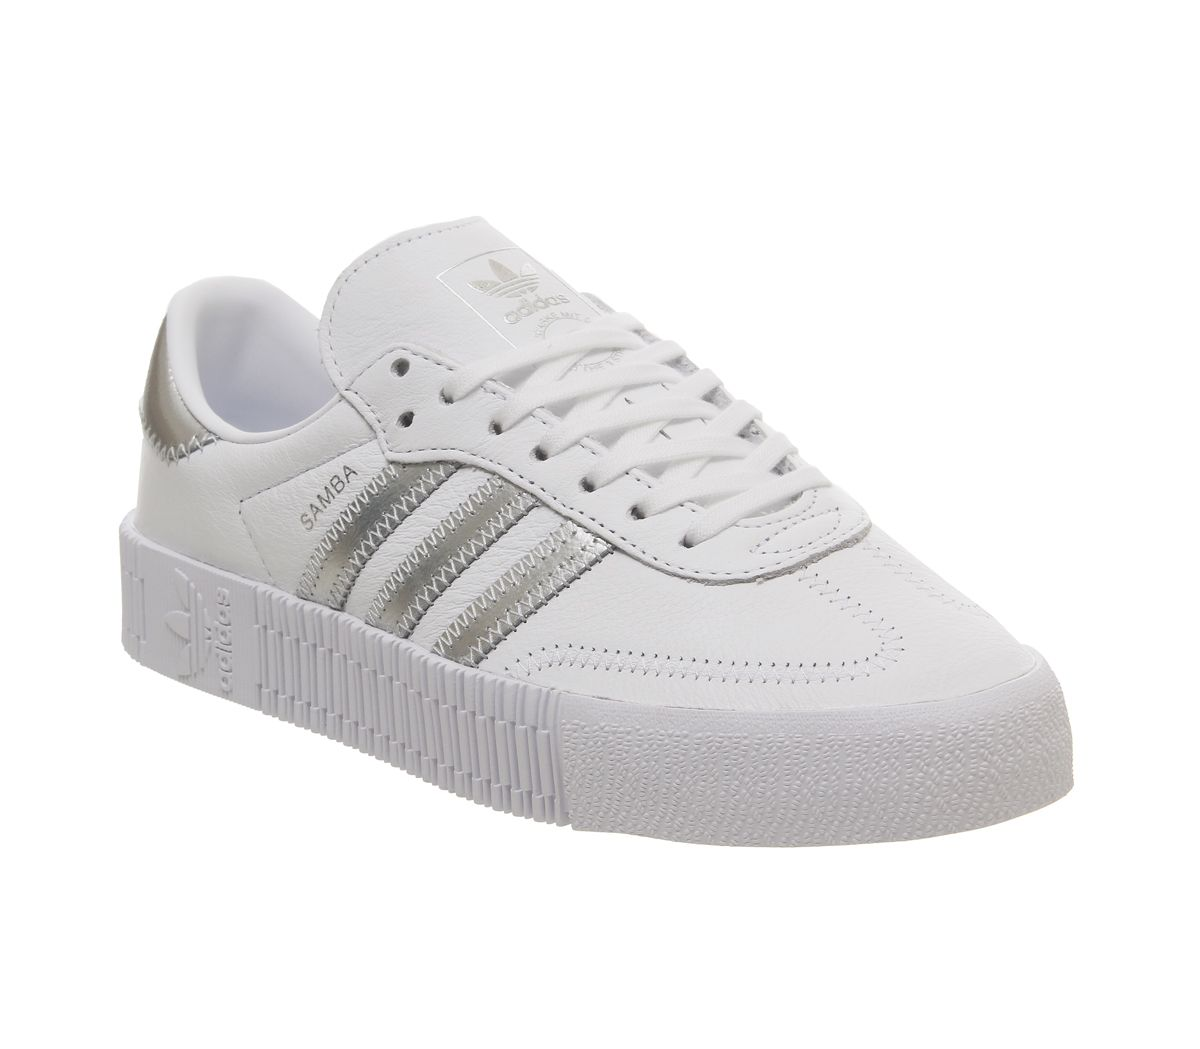 lowest price 256cd 750f0 adidas Samba Rose Trainers White Silver Metallic - Hers trainers